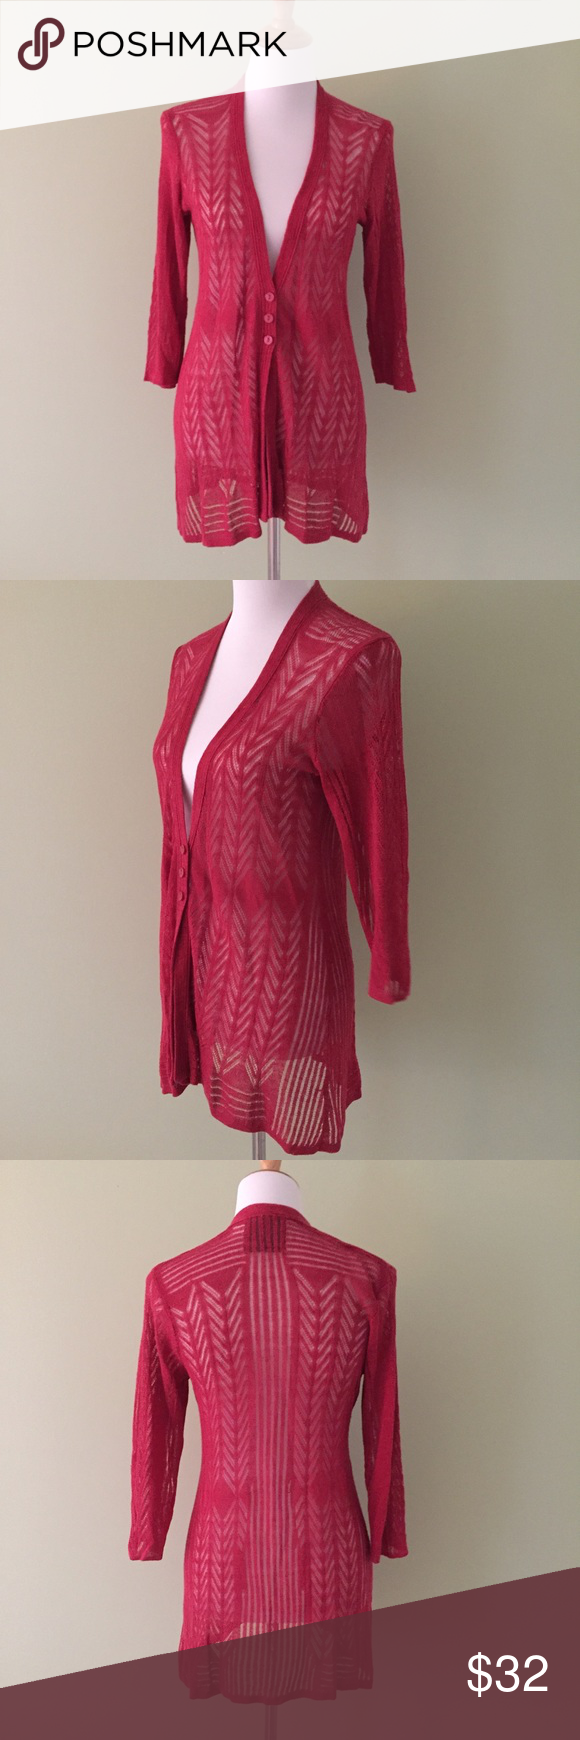 Anthropologie Guinevere Red Sheer Lace Cardigan L Gorgeous ...